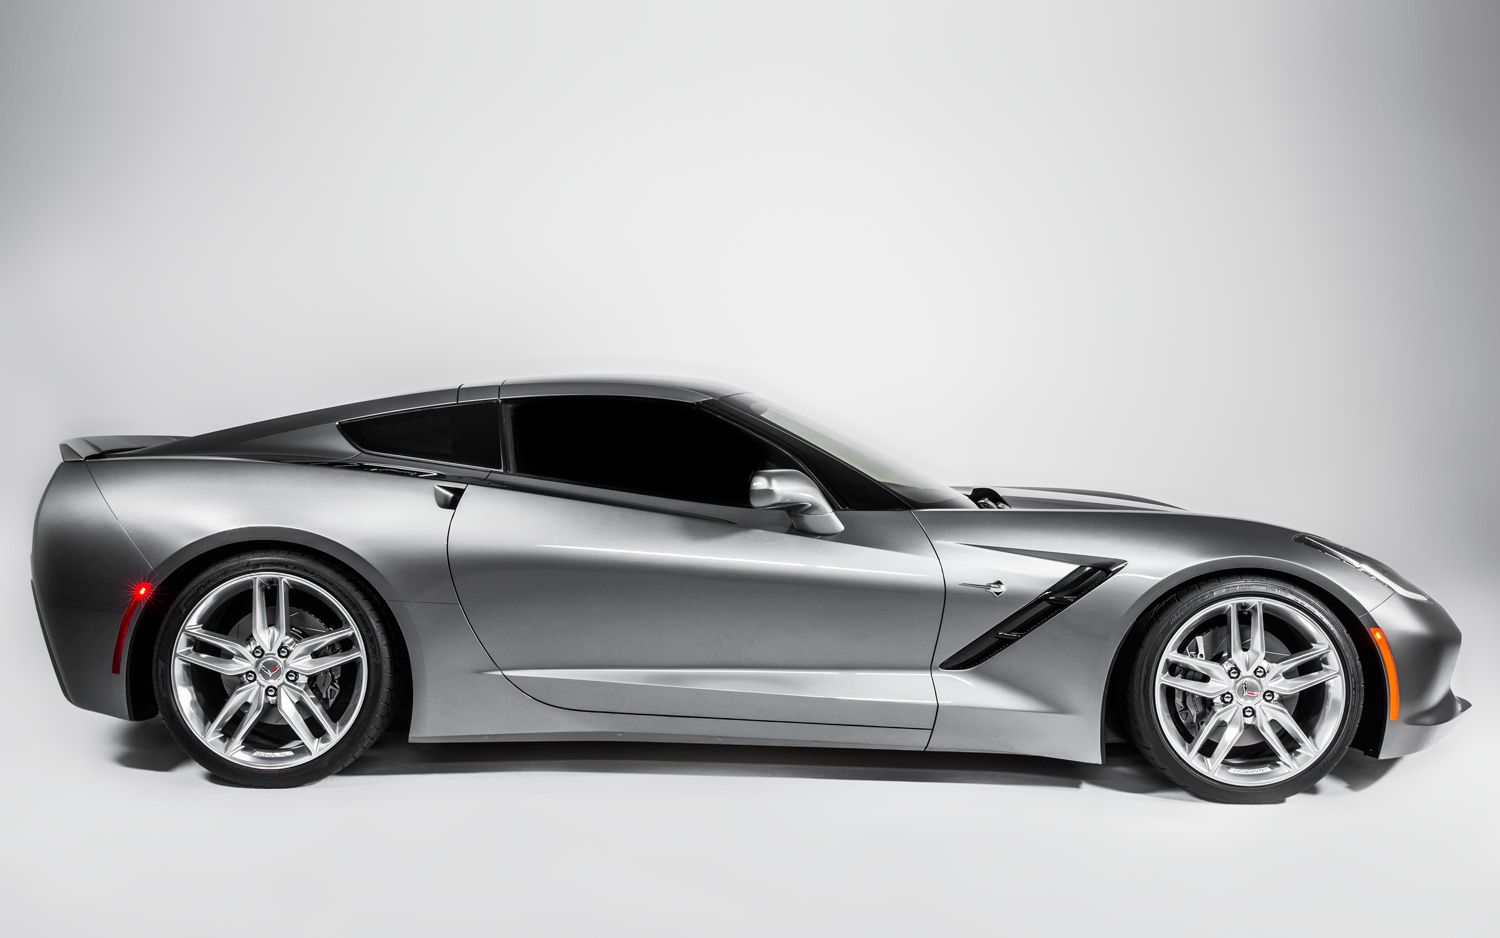 2014 Chevrolet Corvette Right Side View Photo On January 14 2013